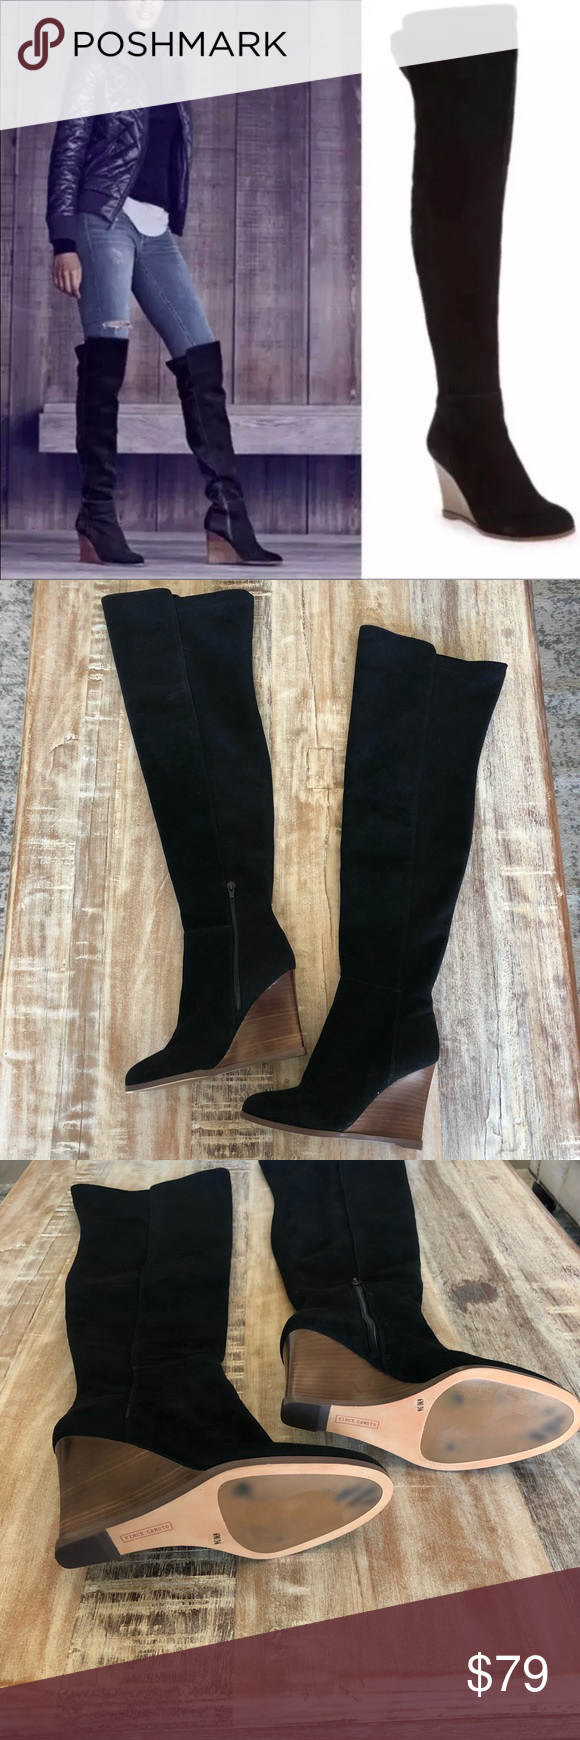 18248412adc Vince Camuto  Granta  Over Knee Wedge Black Boots These boots are the  perfect combination